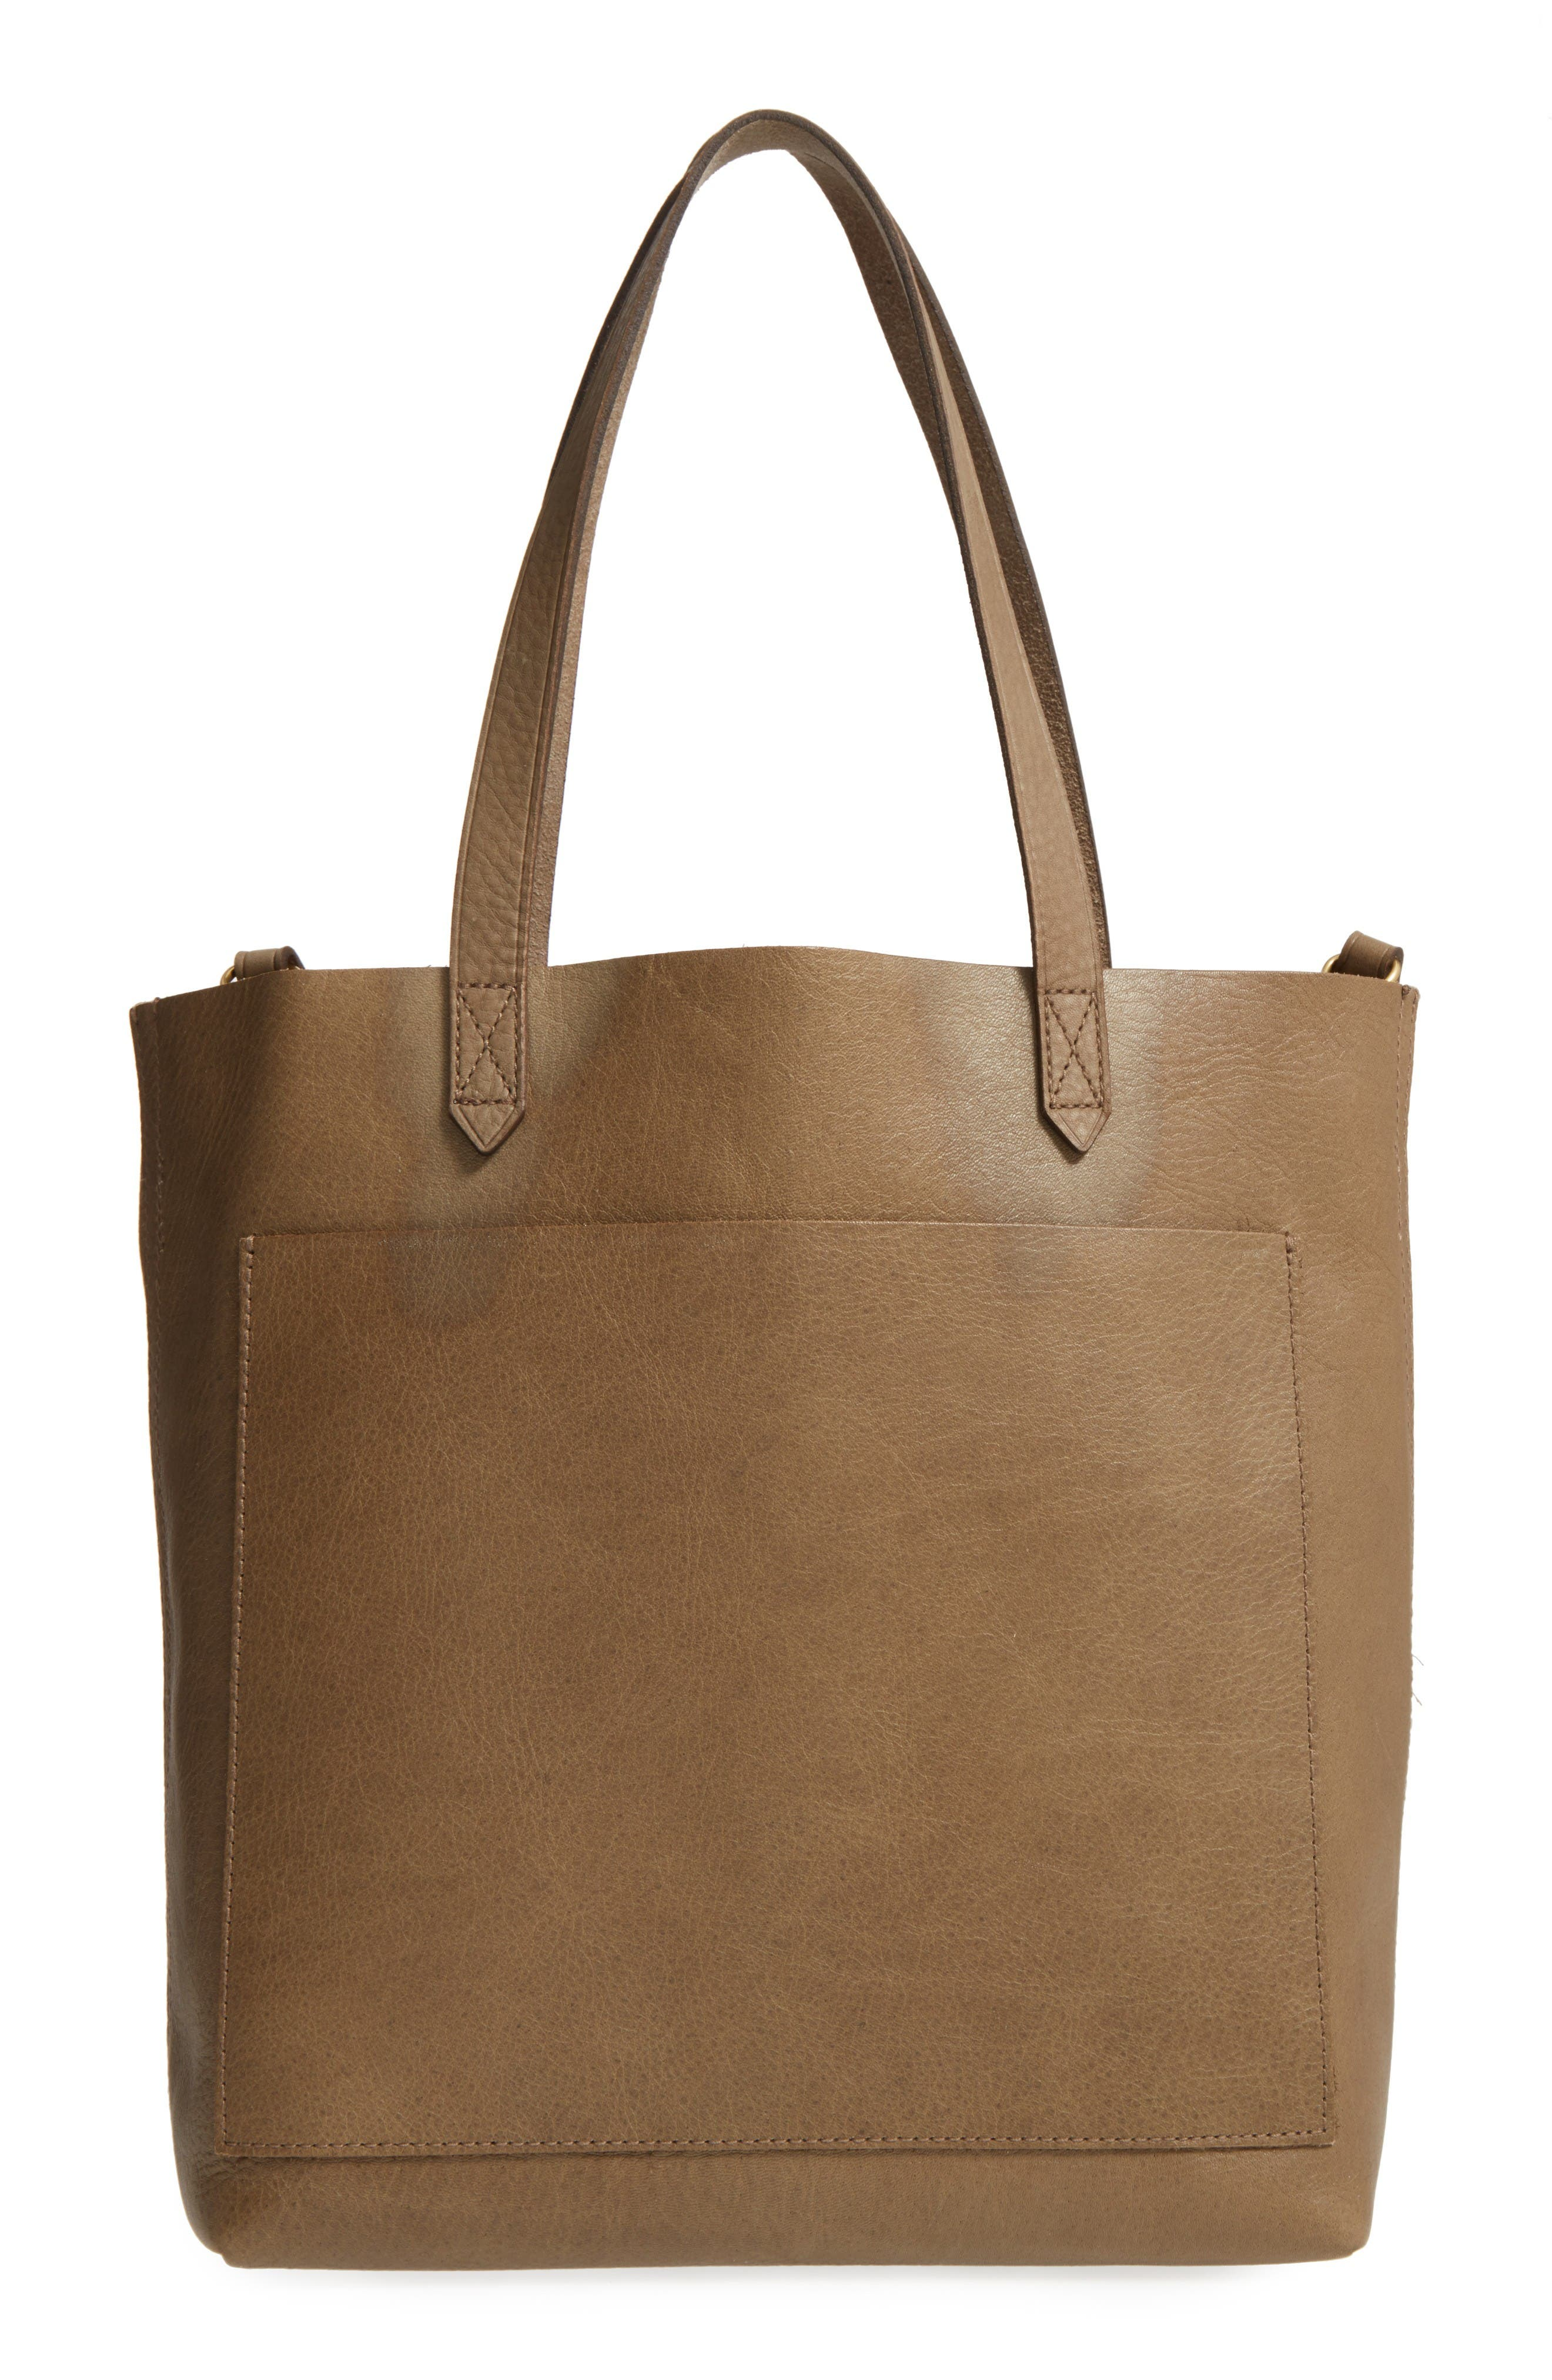 Medium Leather Transport Tote,                             Main thumbnail 1, color,                             Washed Olive